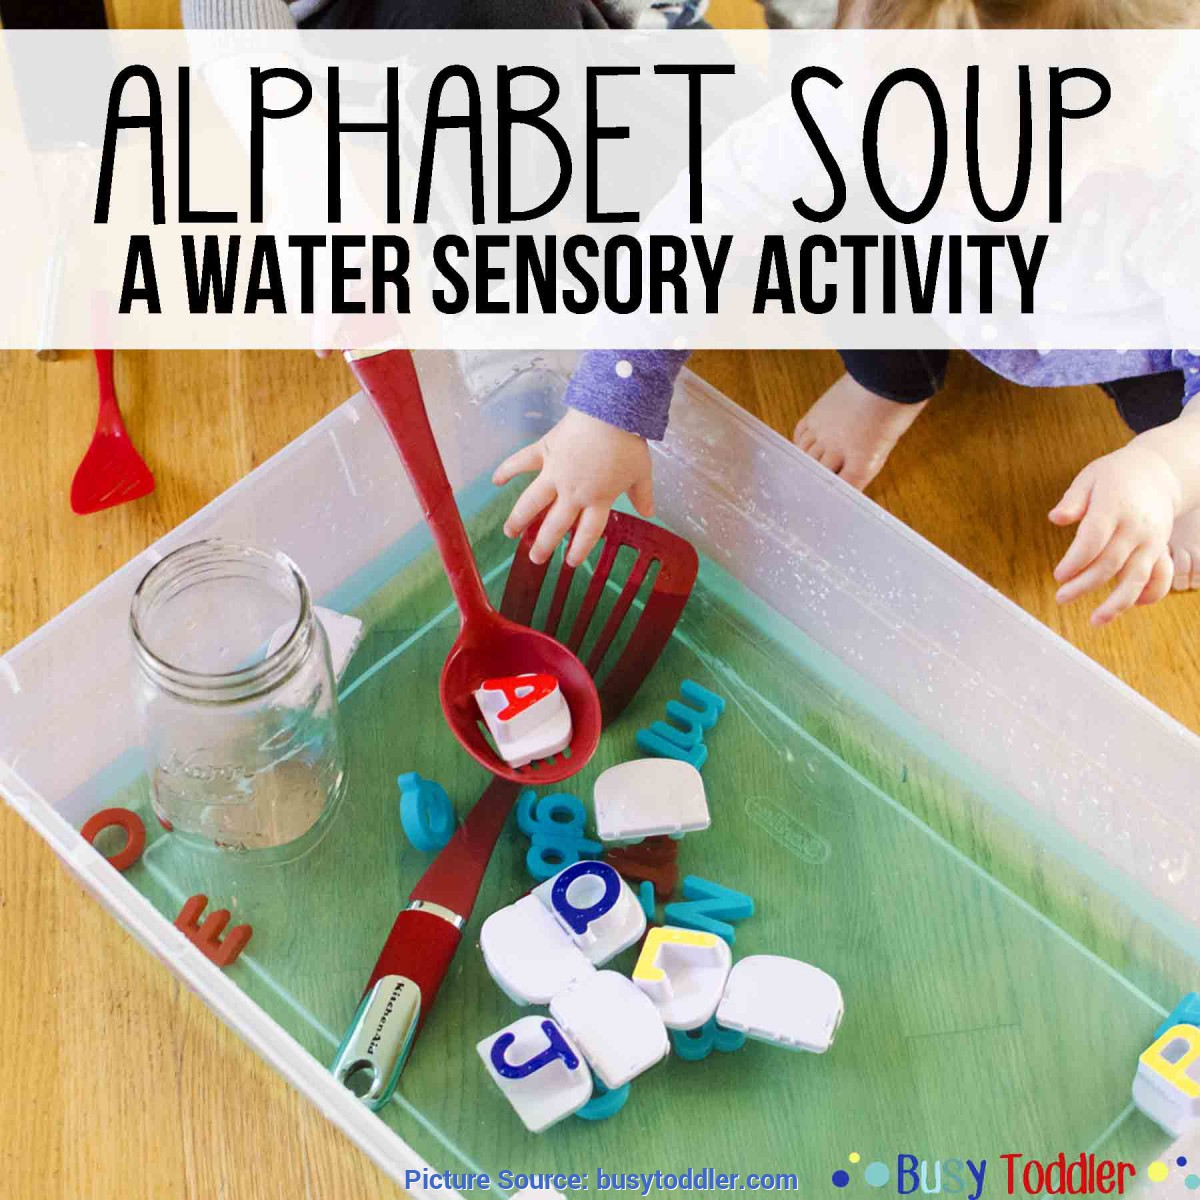 Excellent Water Lesson Plans For Preschoolers Alphabet Soup: Sensory Water Activity - Busy Tod